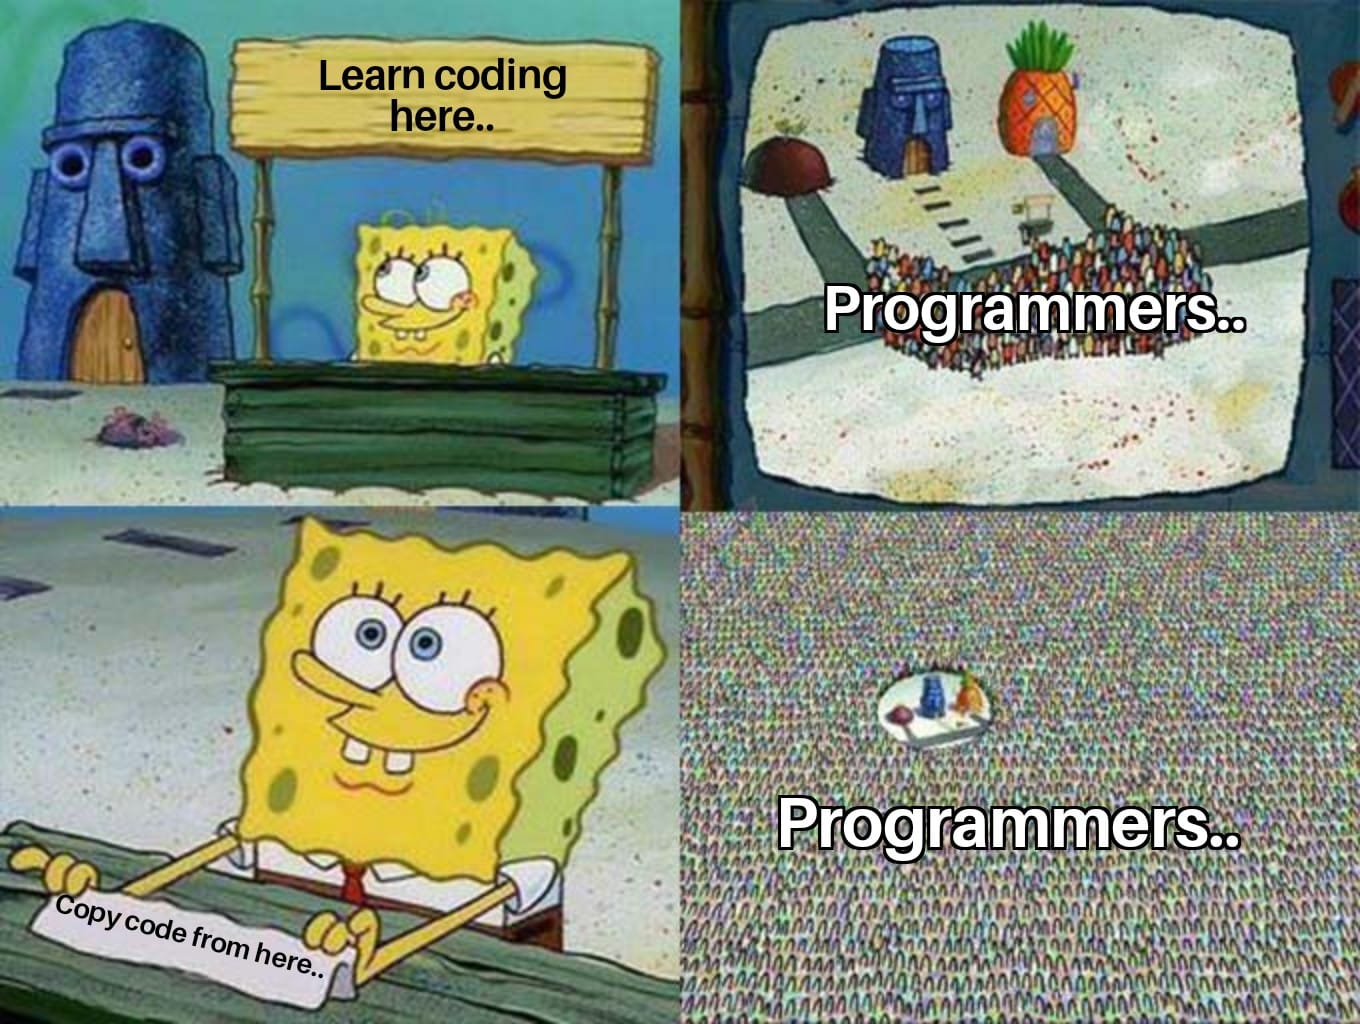 copy_code_from_here.jpg